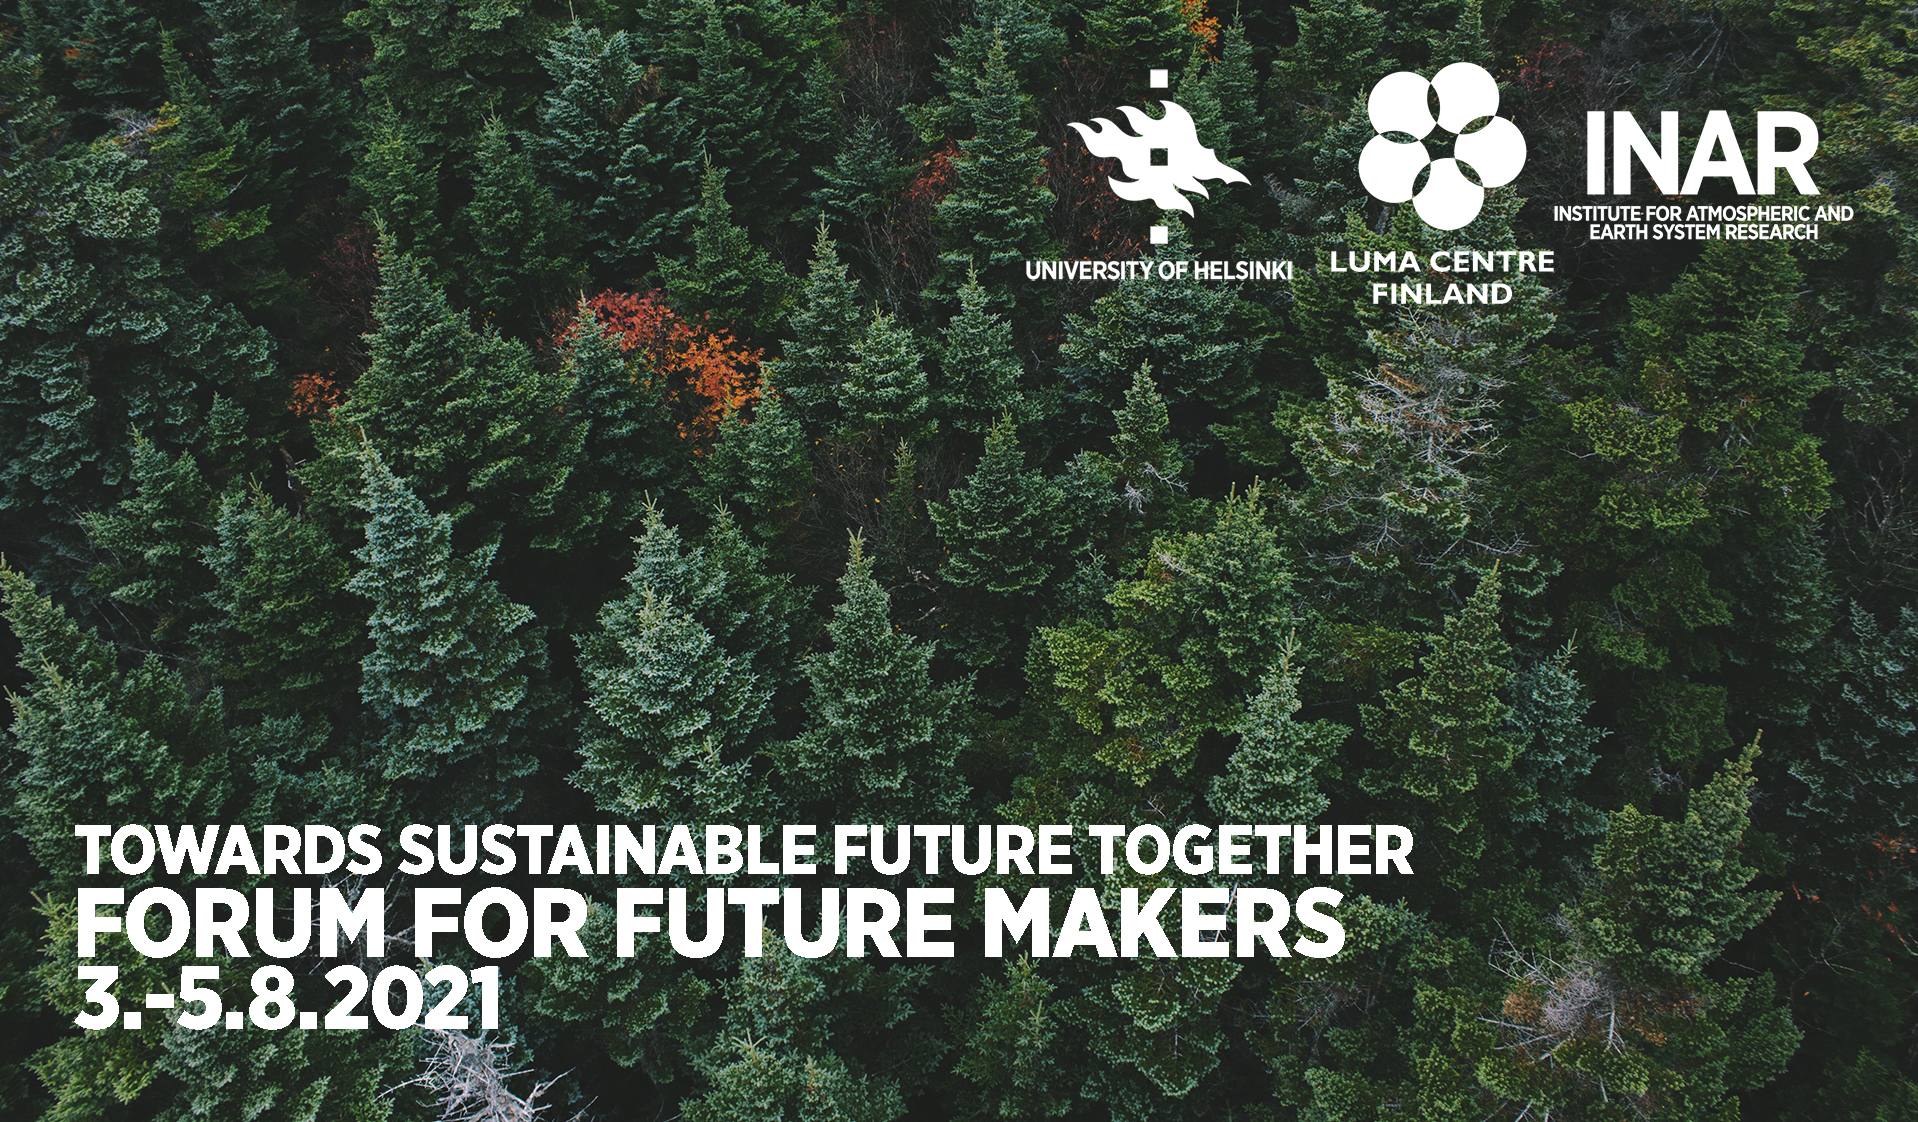 Towards Sustainable Future Together - Forum for Future Makers